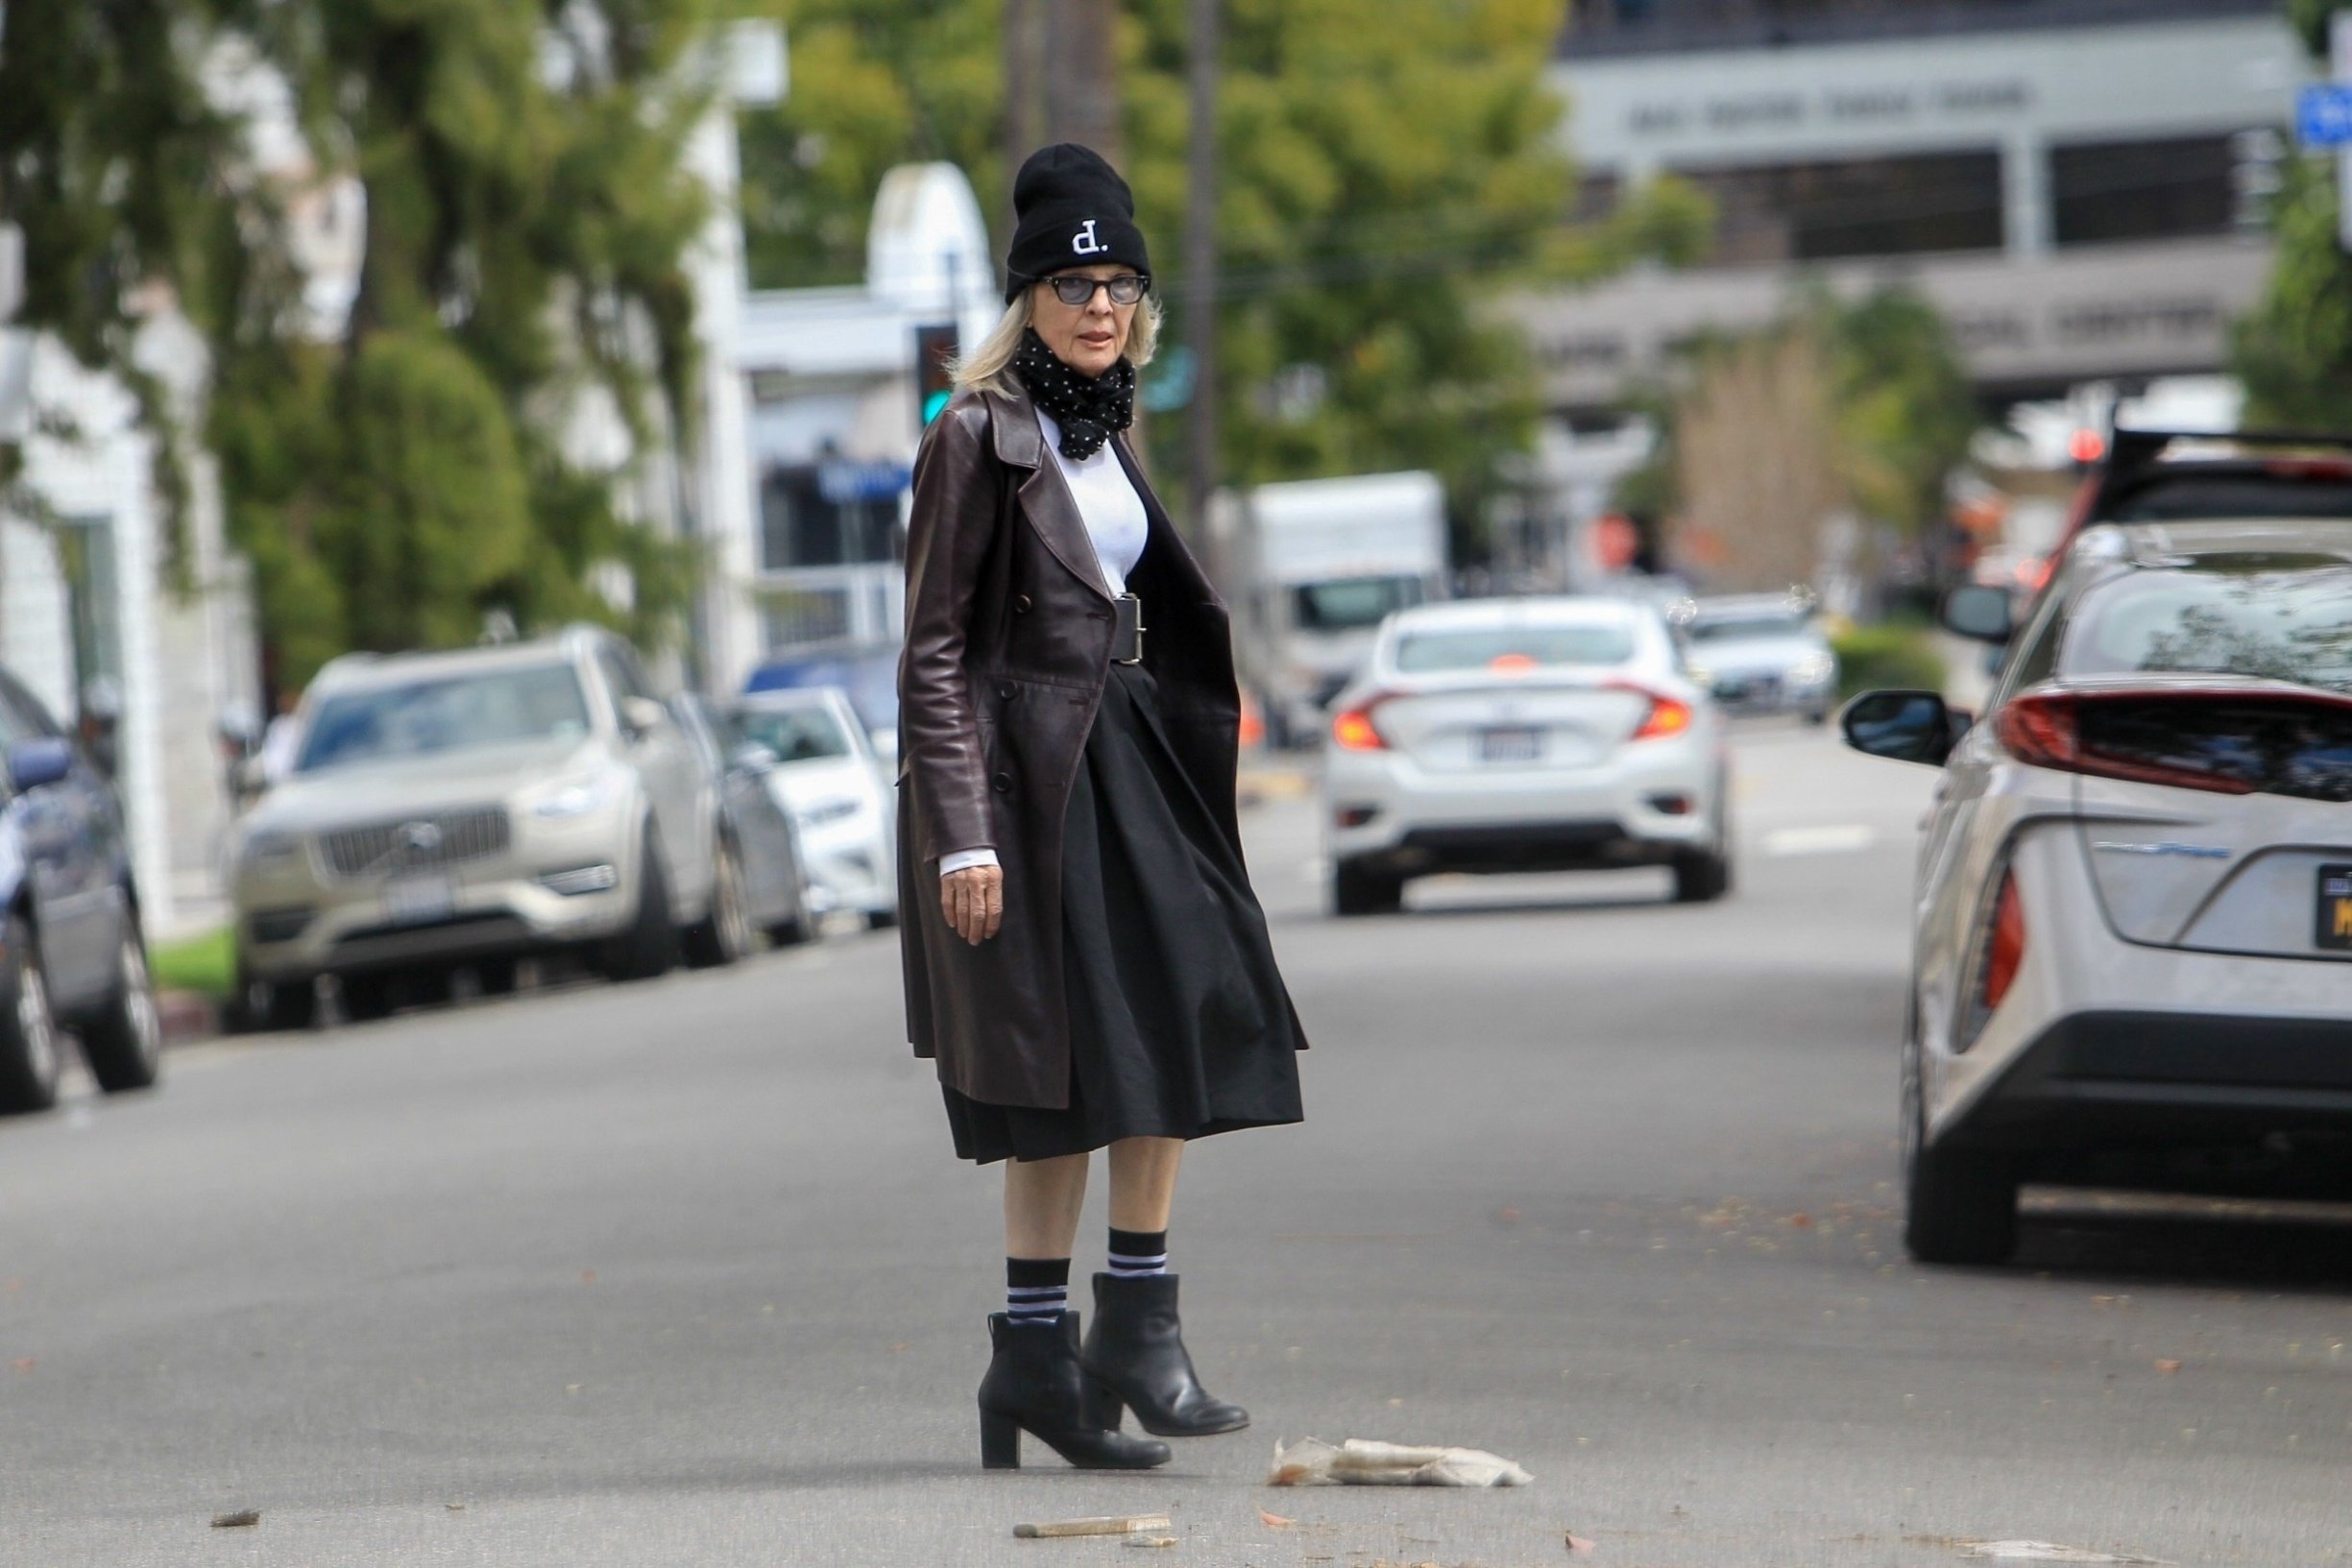 Beverly Hills, CA  - Diane Keaton displays her style running errands in Beverly Hills  Pictured: Diane Keaton  BACKGRID USA 4 MARCH 2019, Image: 417254390, License: Rights-managed, Restrictions: , Model Release: no, Credit line: Profimedia, Backgrid USA